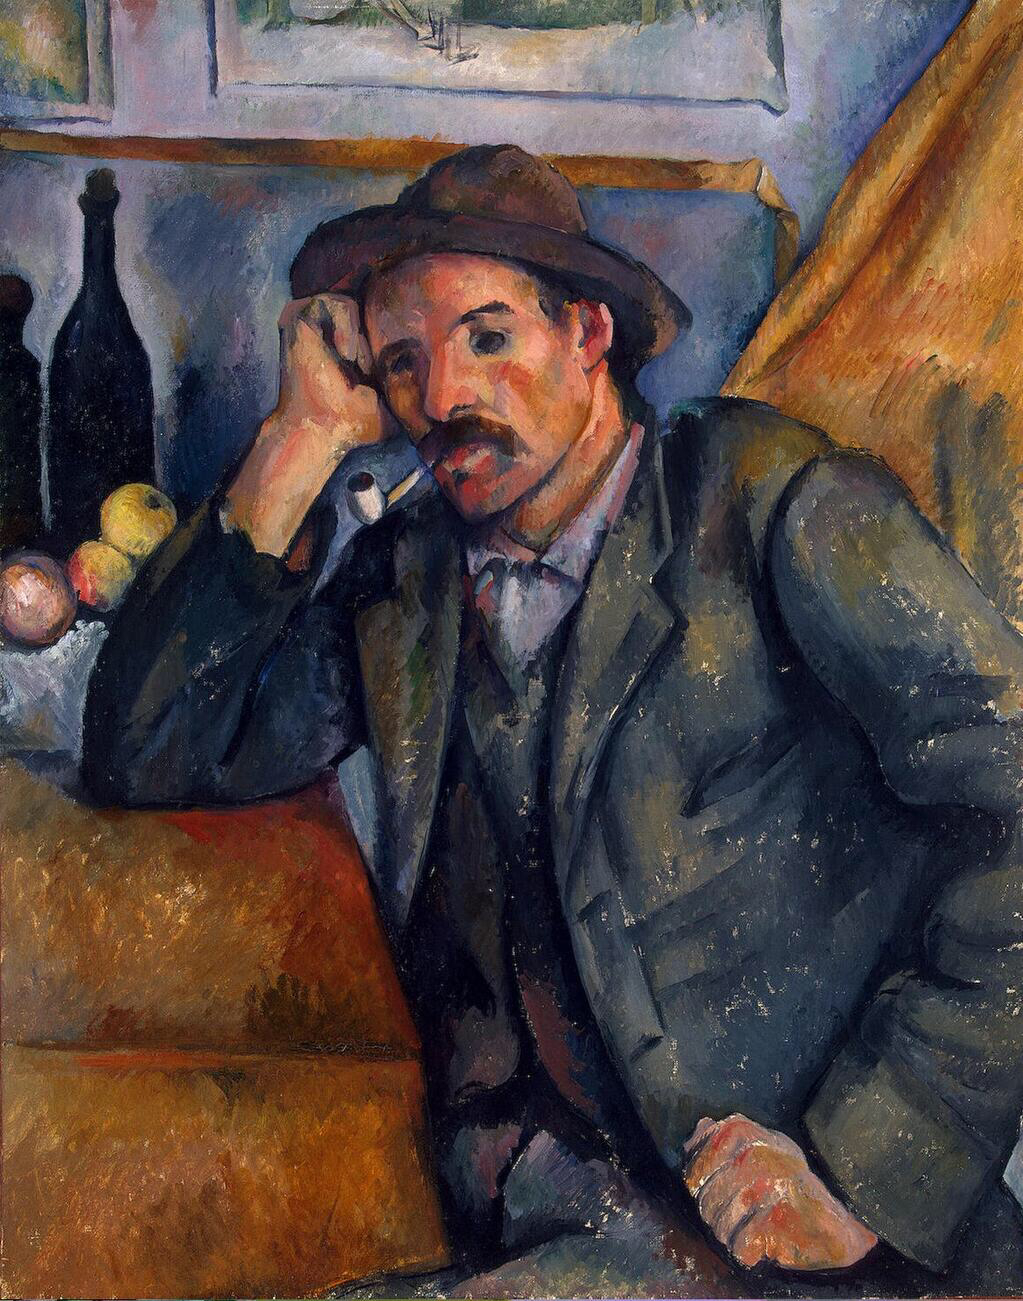 Man with a Pipe - Paul Cézanne